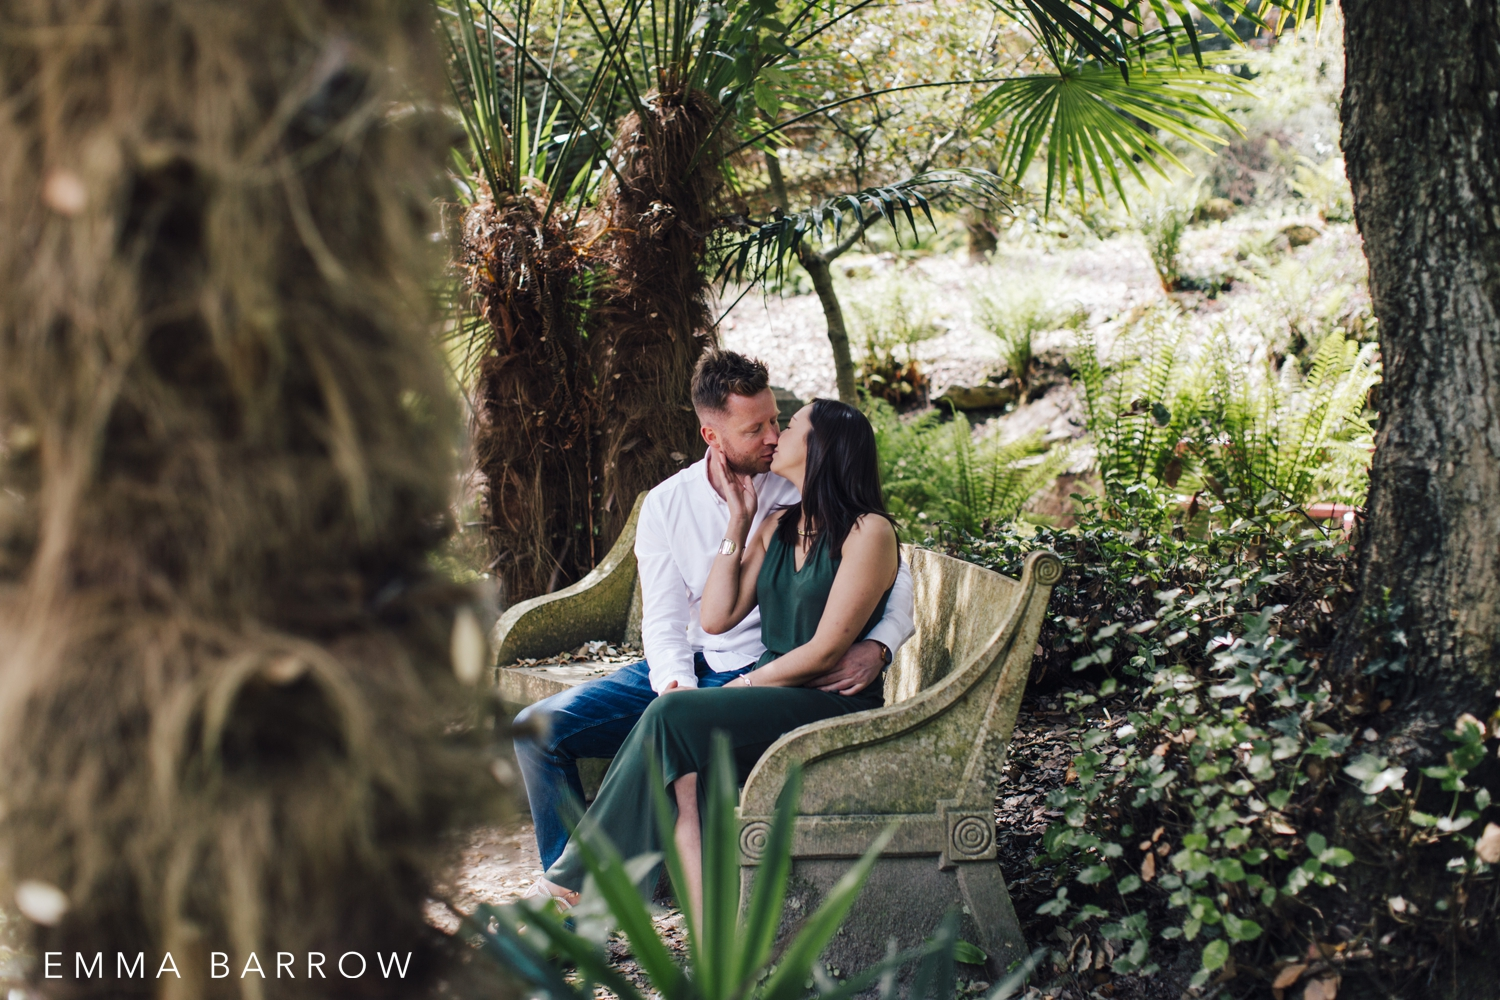 emmabarrow_traceydavidPreWed-83.jpg